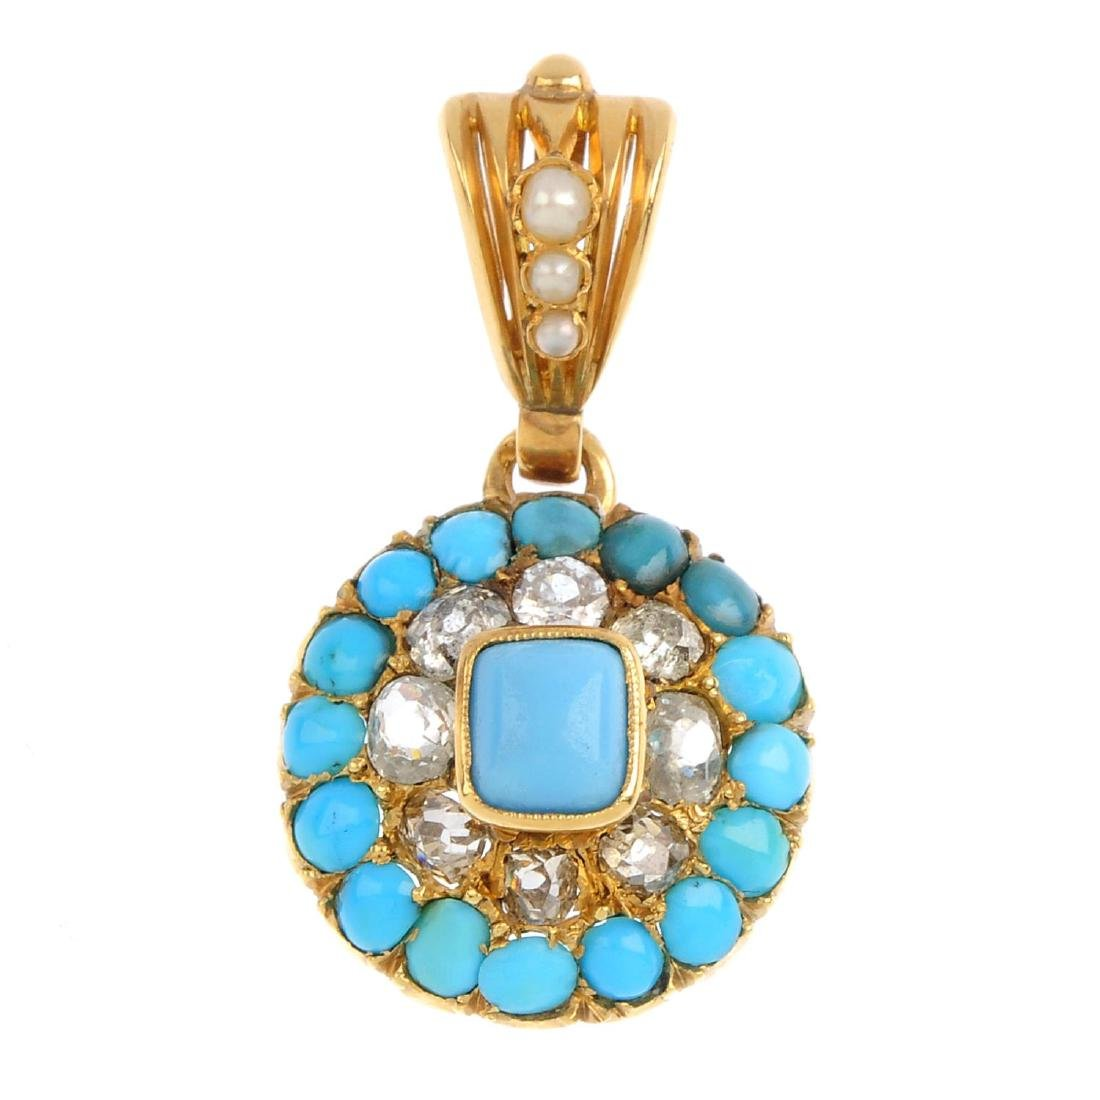 A turquoise, diamond and split pearl pendant. The